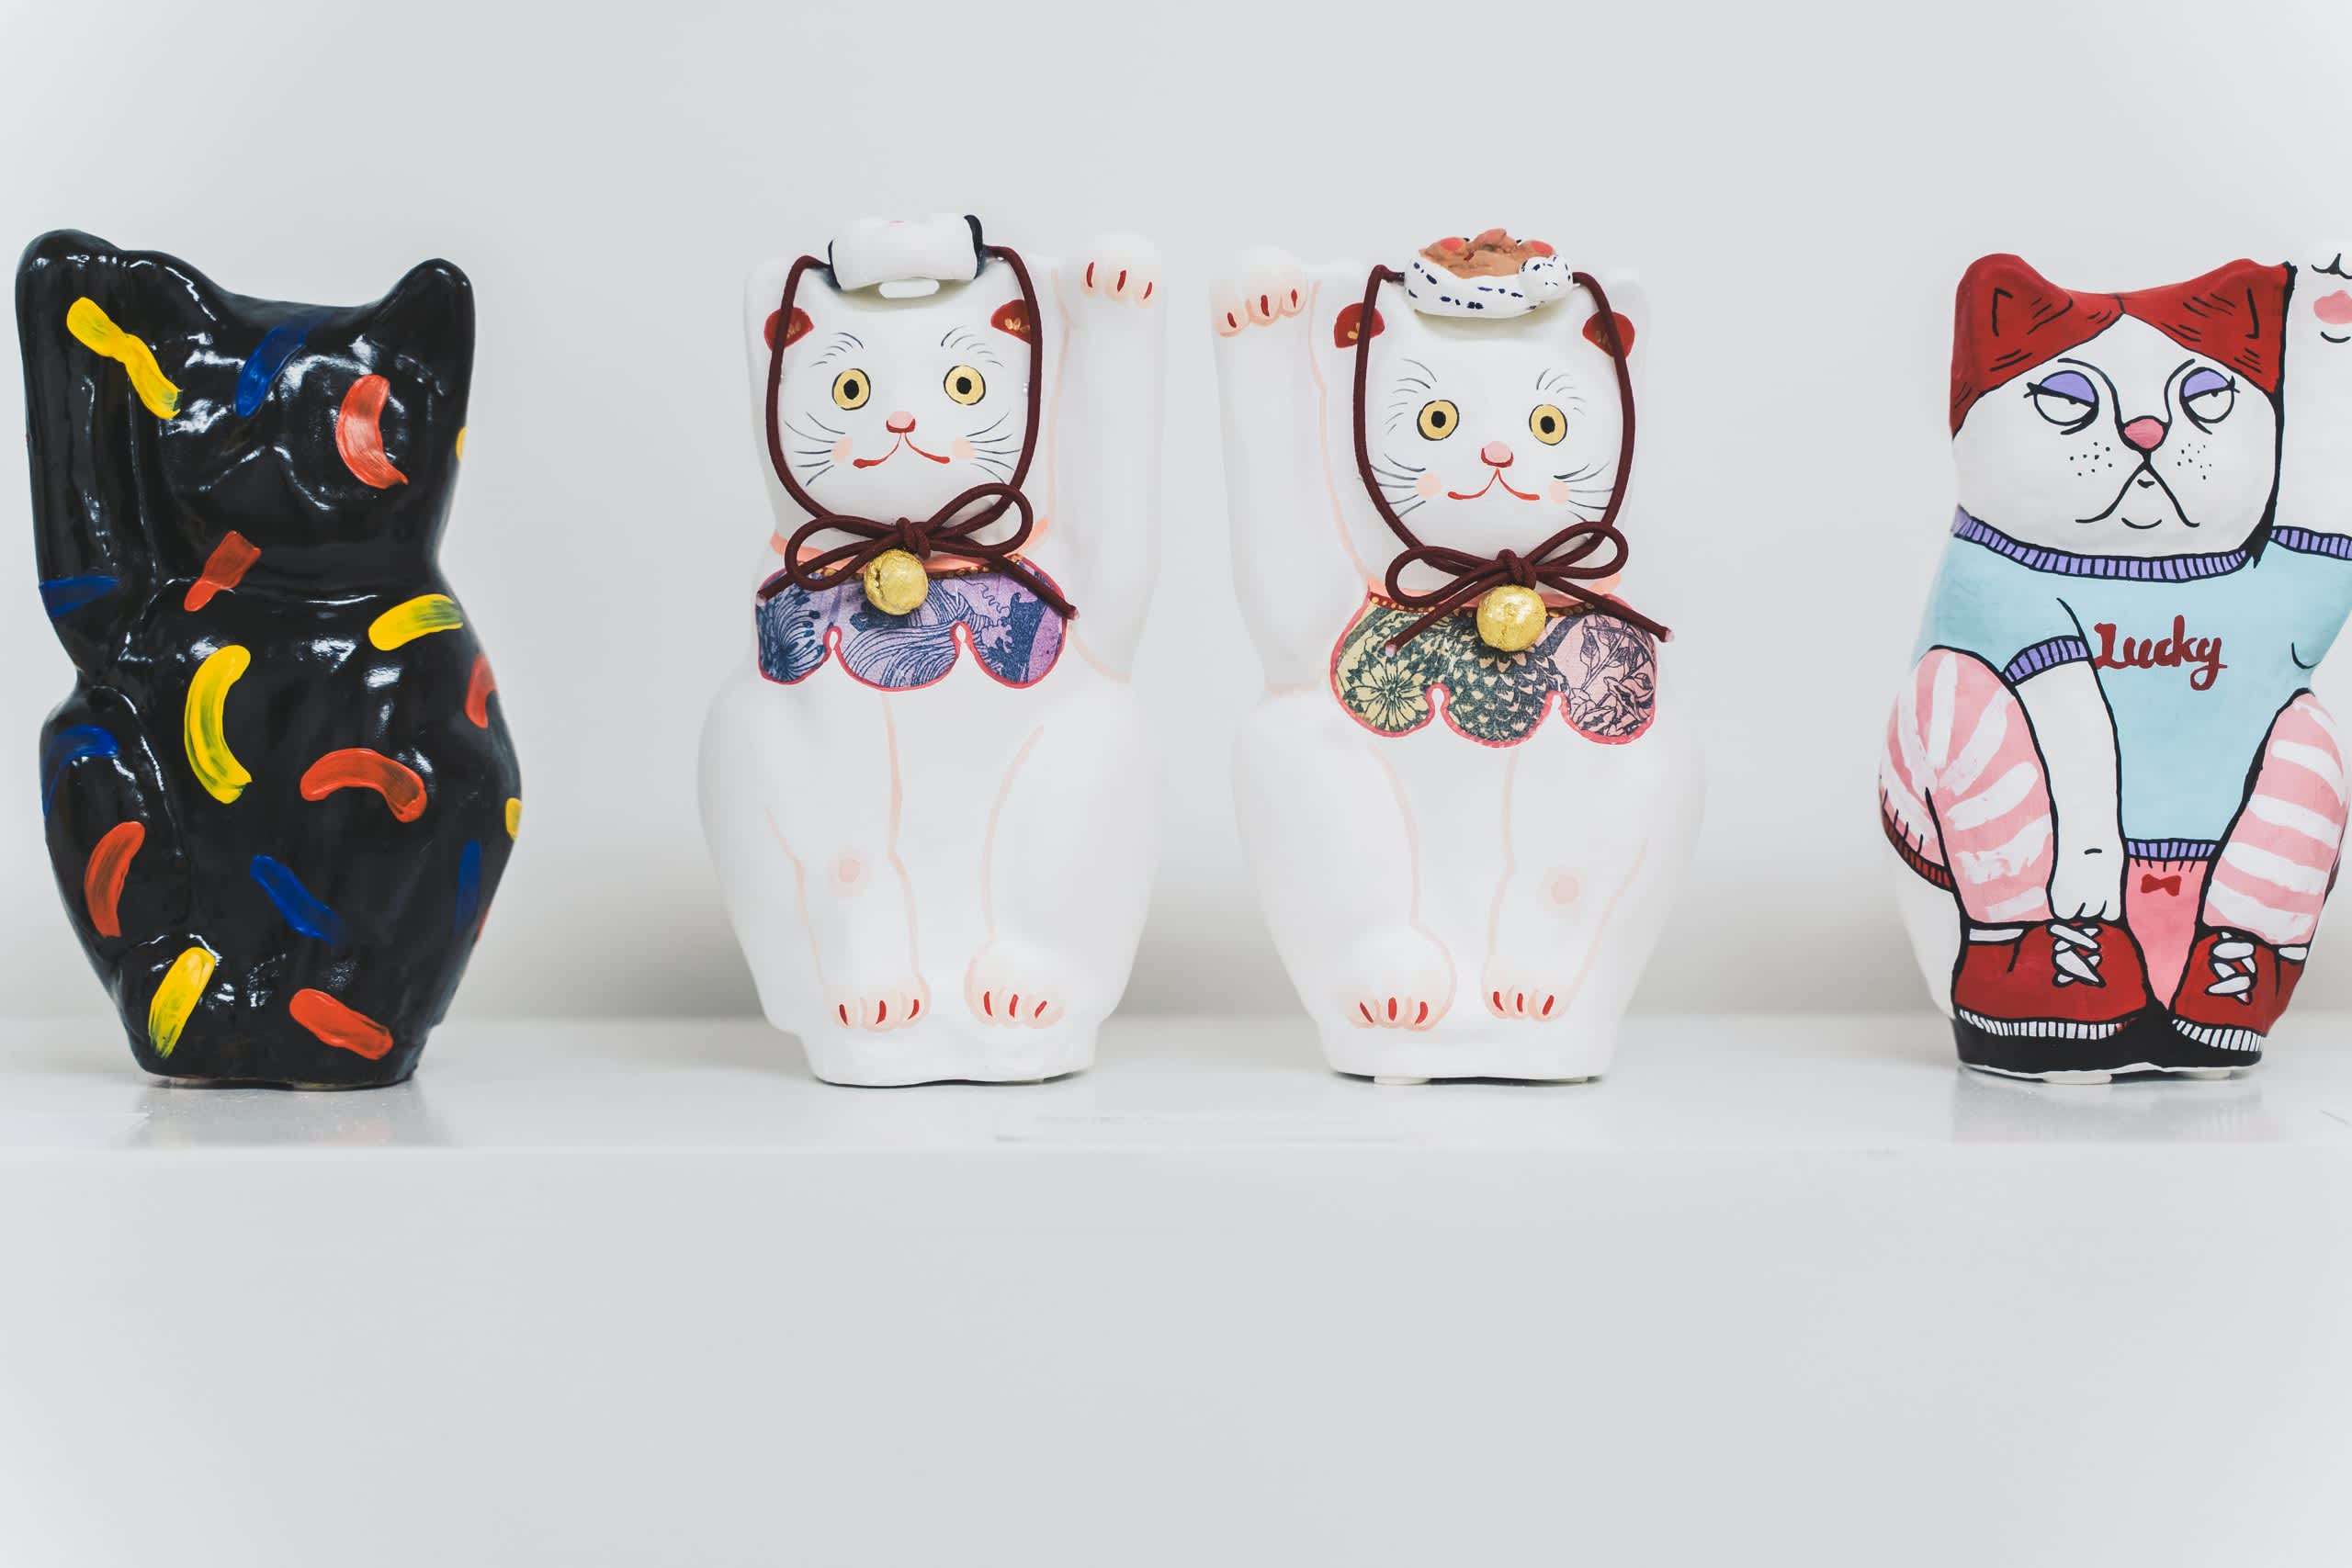 exposition a lucky cat art exhibition - Sato creative - Paris - artistes français-japonais- sid lee